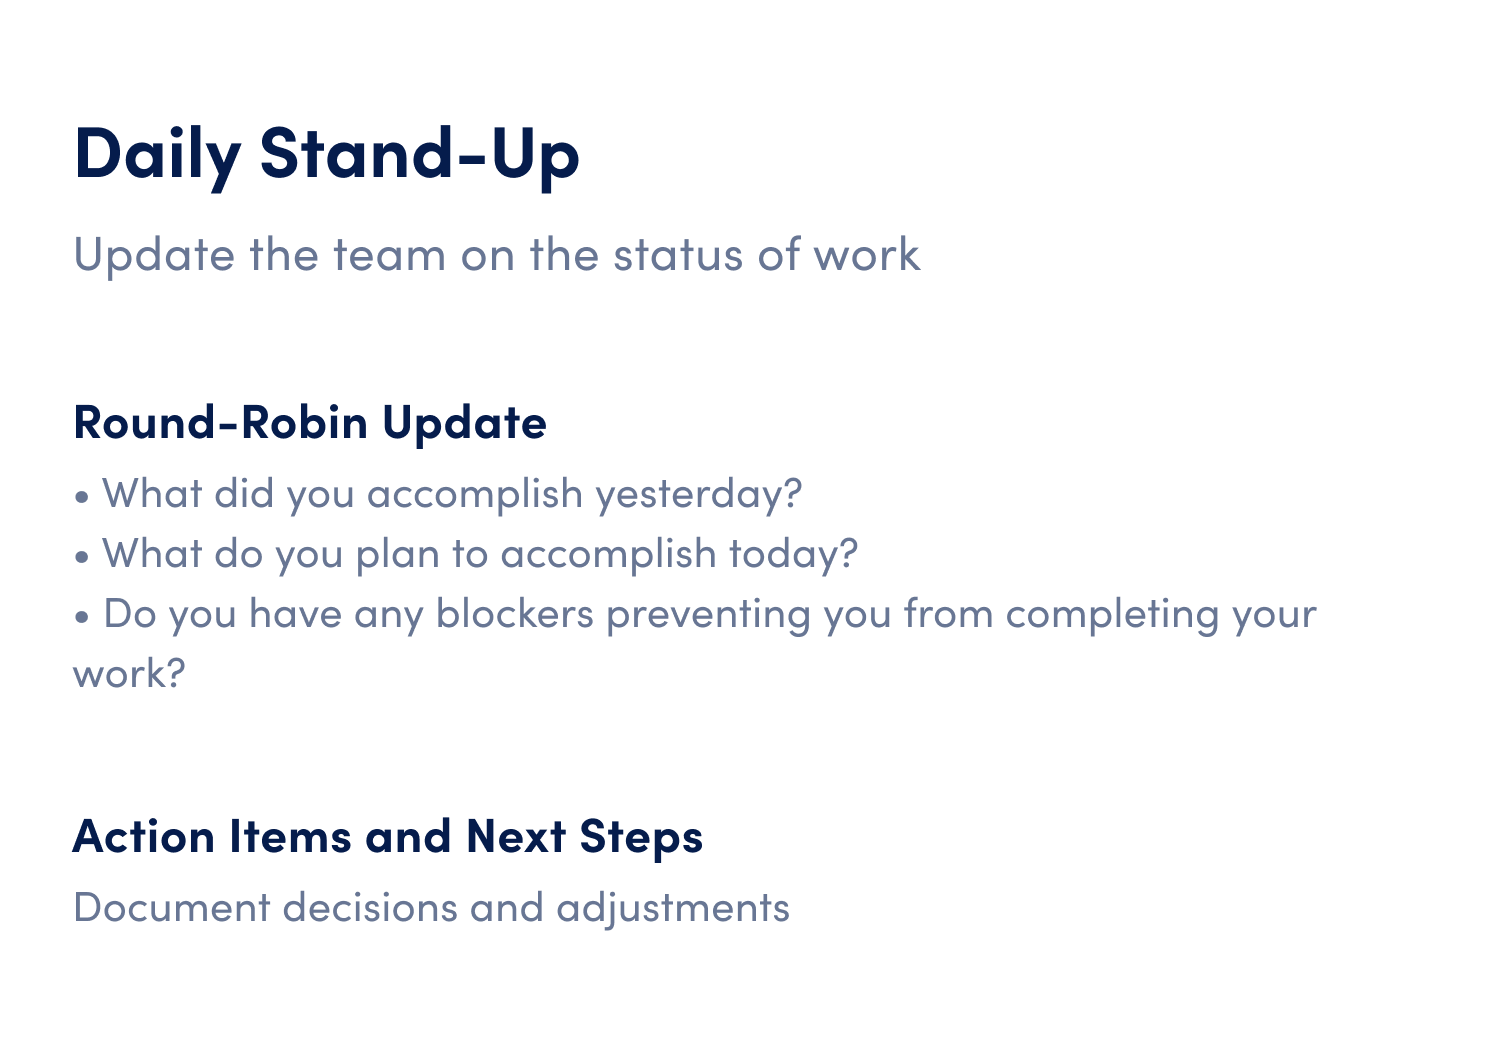 daily stand up meeting agenda template